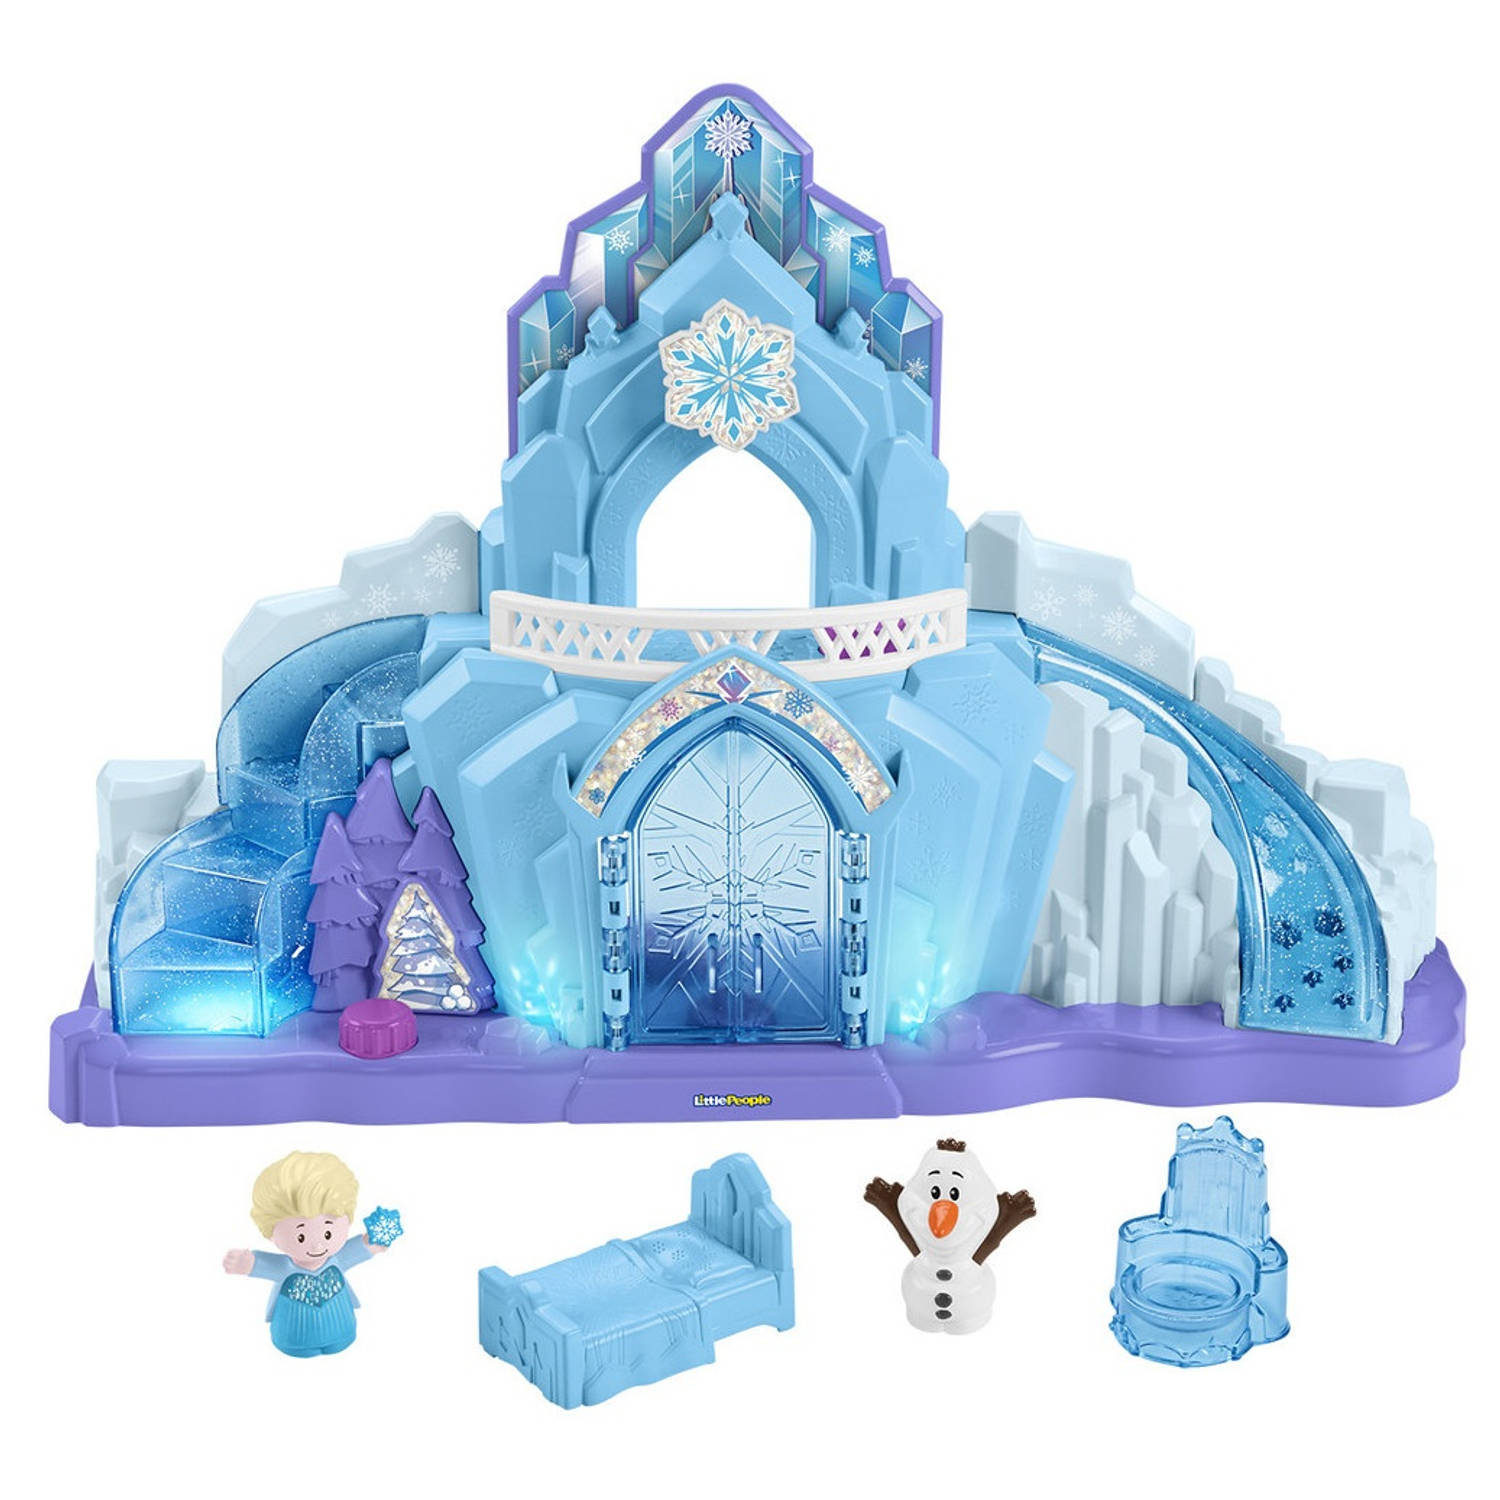 Fisher-Price Little People Disney Frozen Elsa